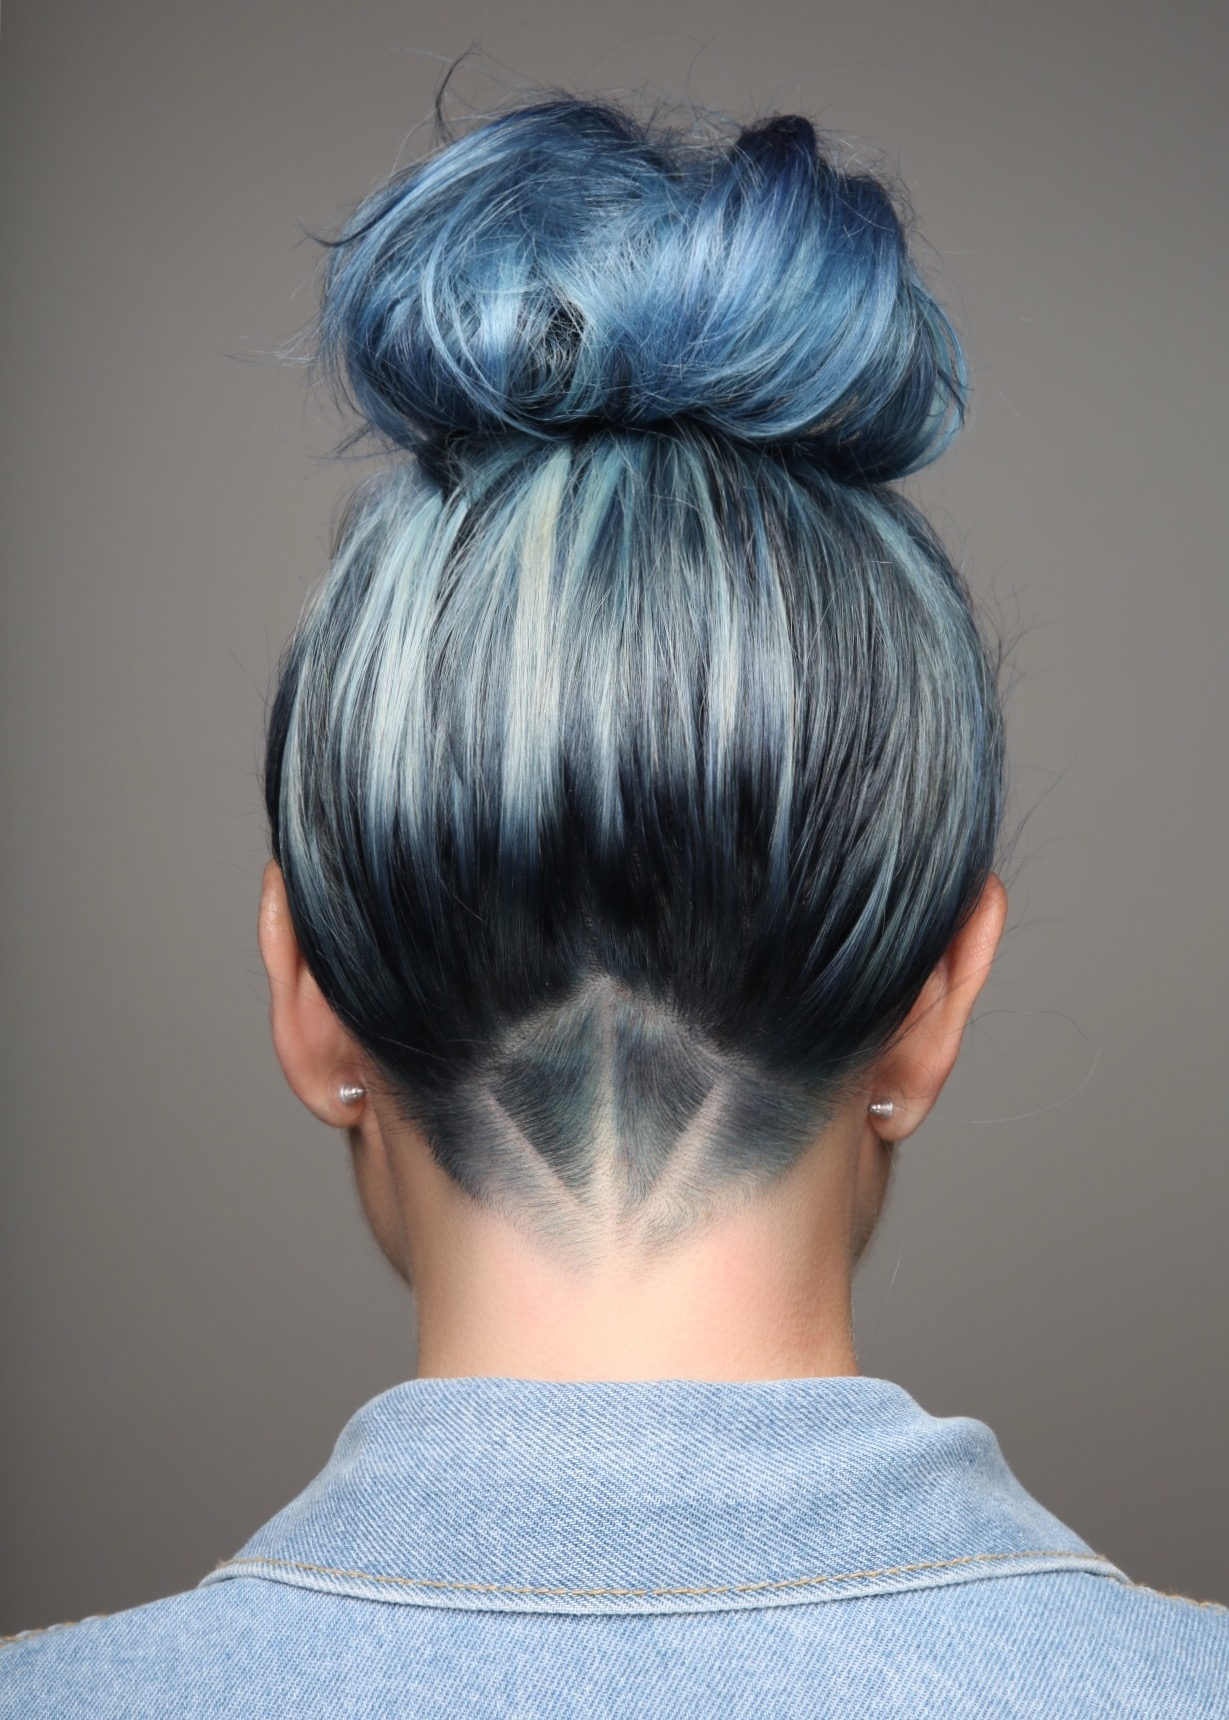 Detailed Undercut with Blue Hair